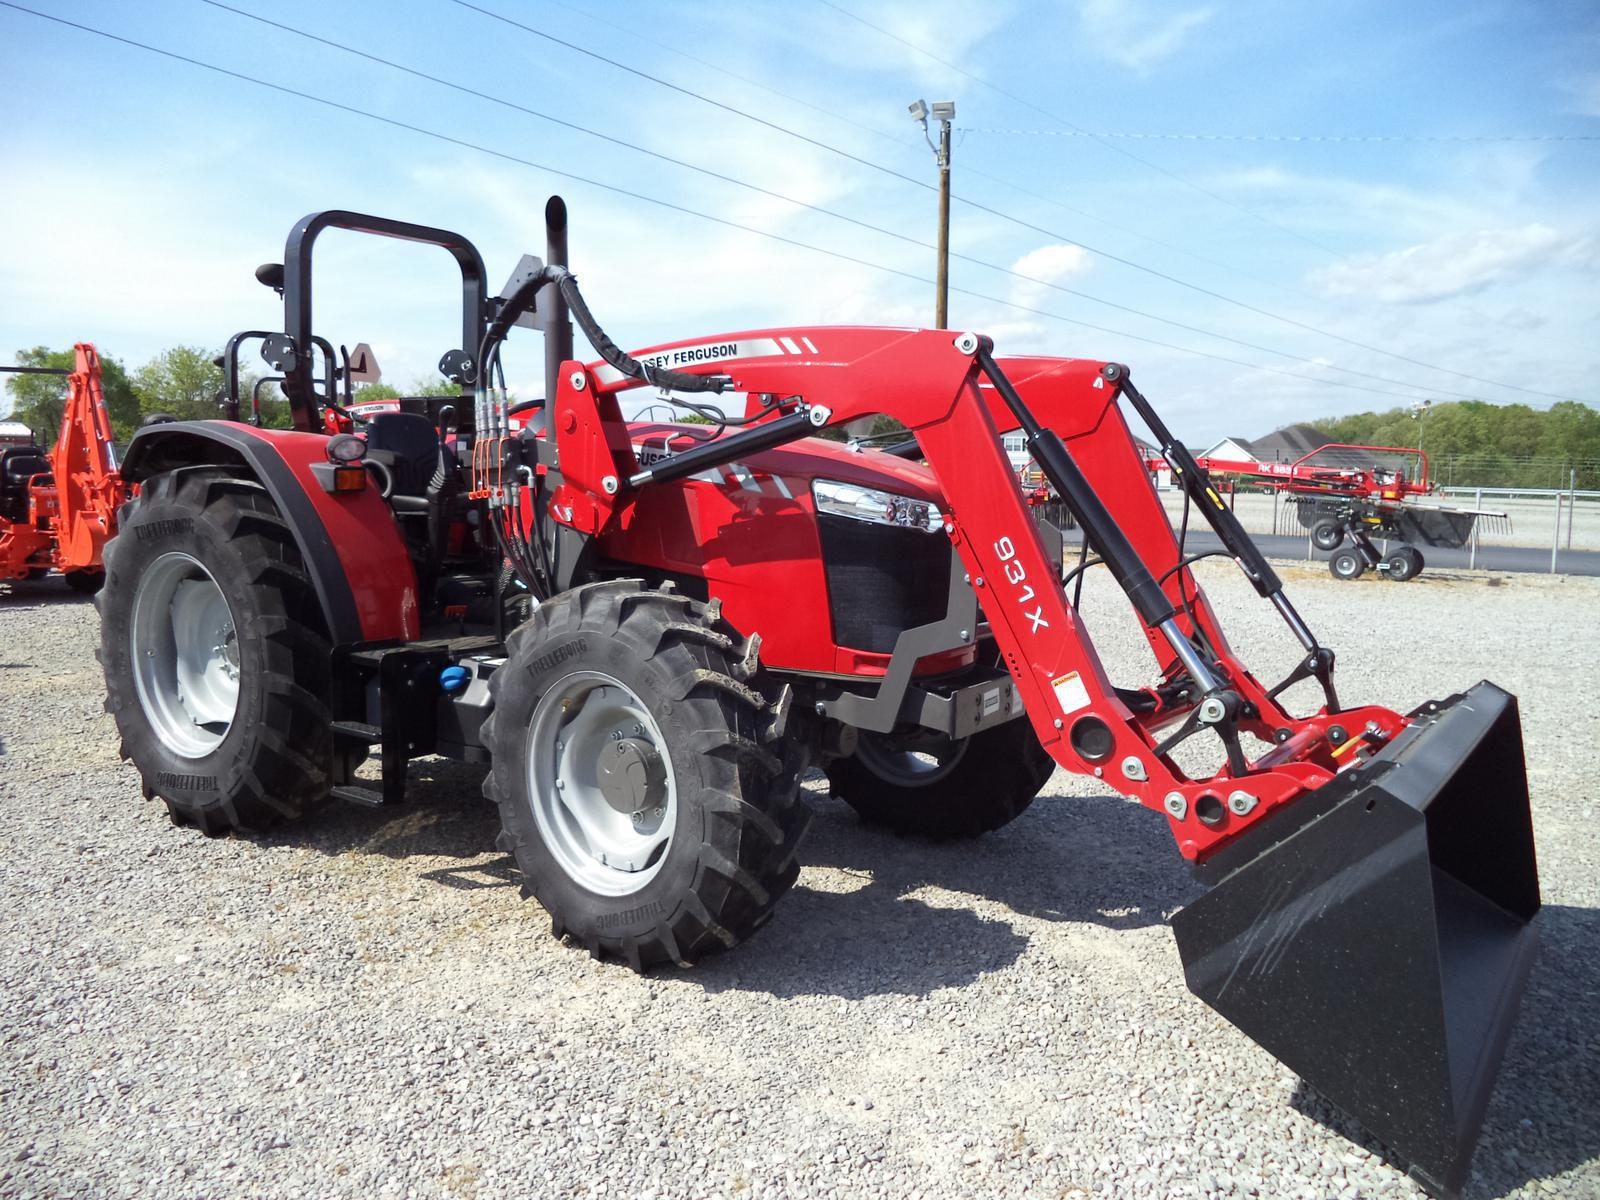 Inventory Tyler Brothers Farm Equipment Maryville, TN (865